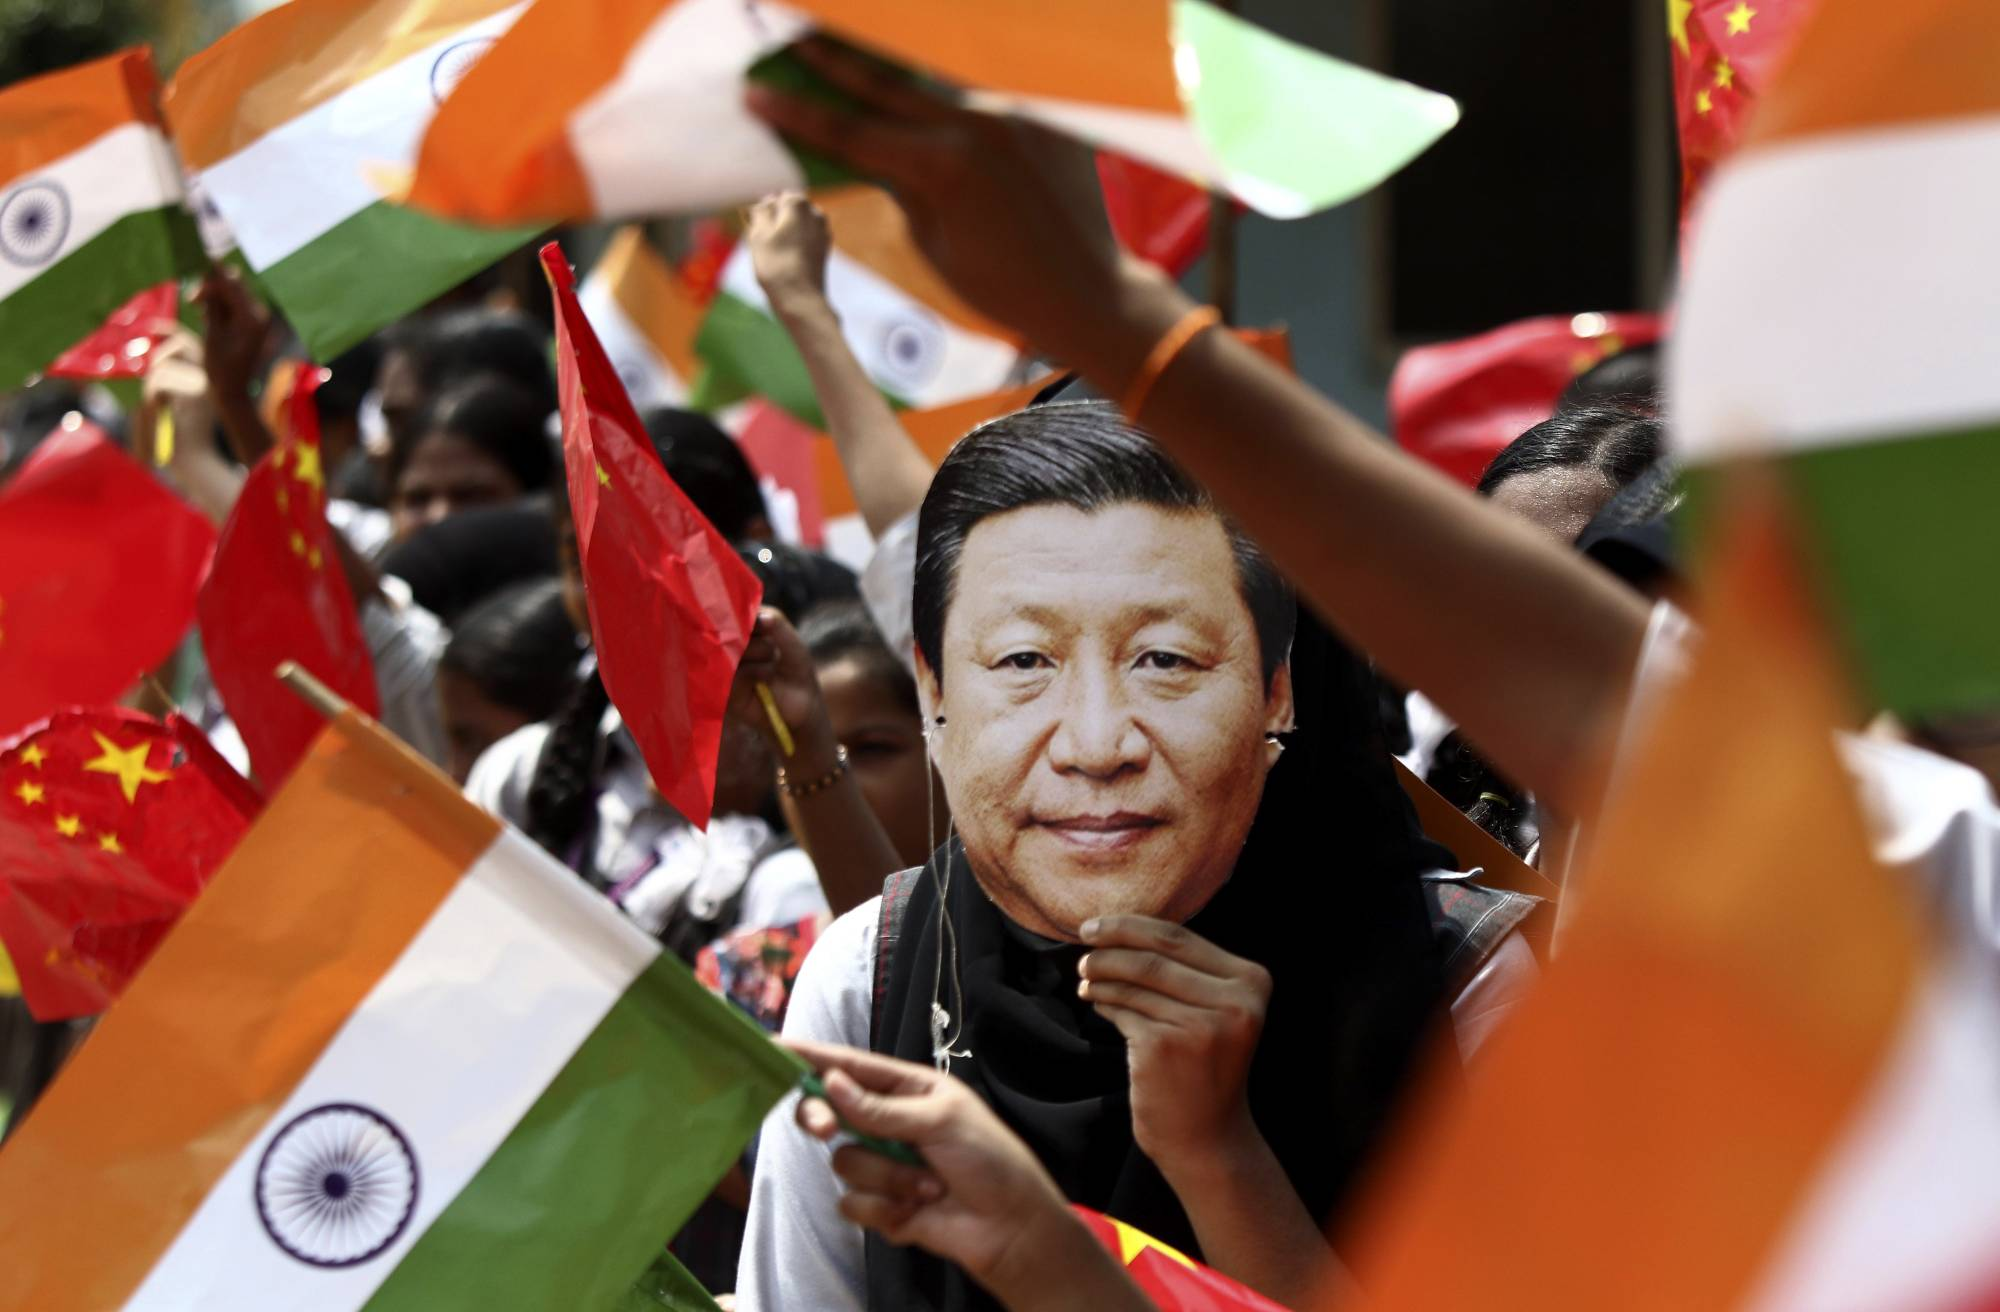 An Indian schoolgirl wears a face mask of Chinese President Xi Jinping to welcome him on the eve of his visit in Chennai, India, last October. Tensions along the China-India border high in the Himalayas have flared again in recent weeks. | AP